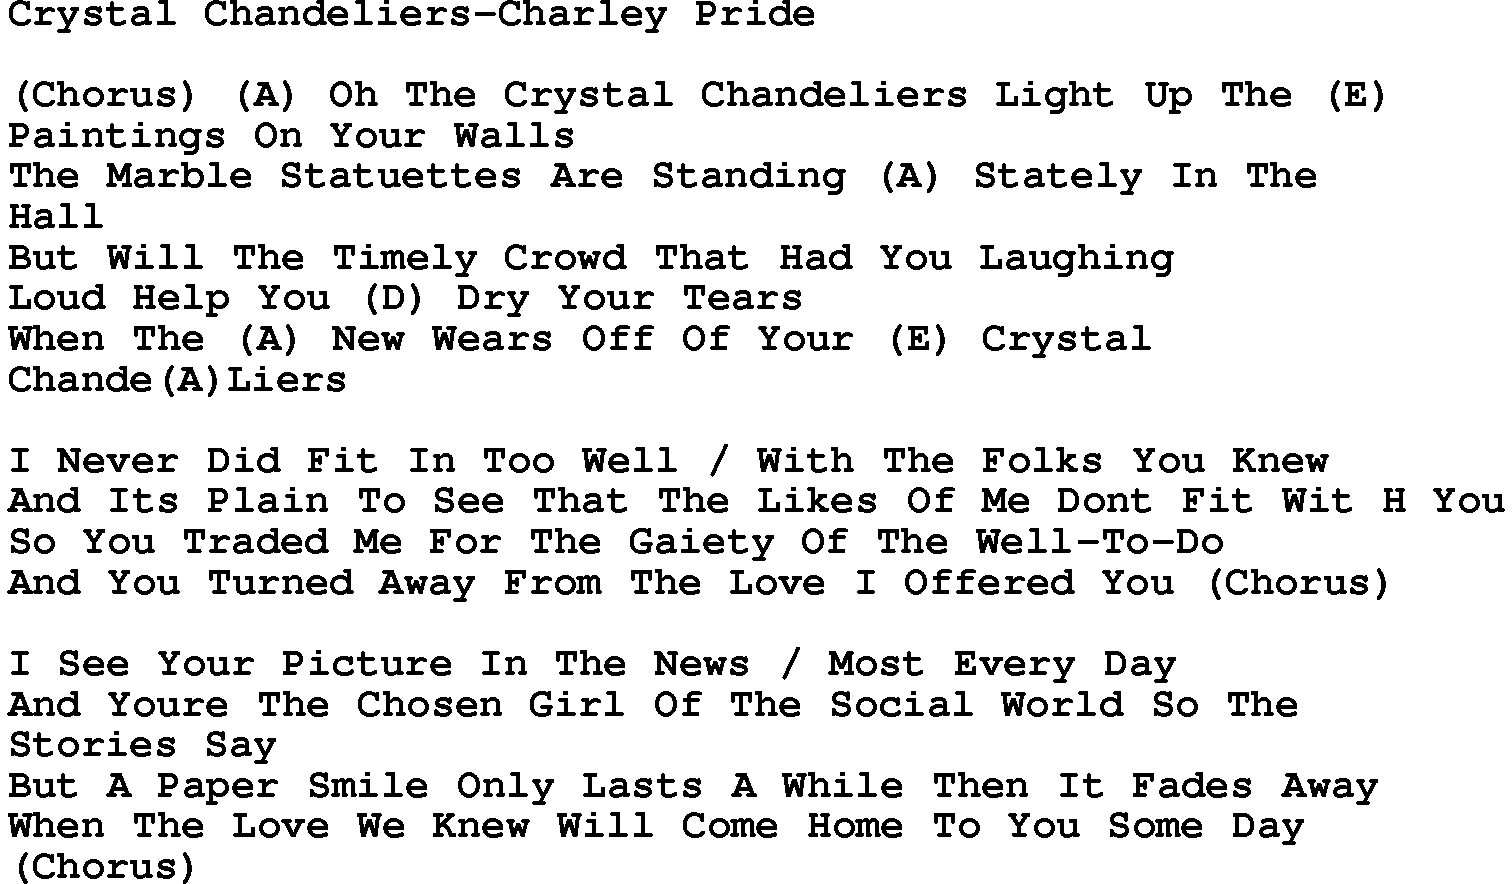 Country musiccrystal chandeliers charley pride lyrics and chords arubaitofo Choice Image